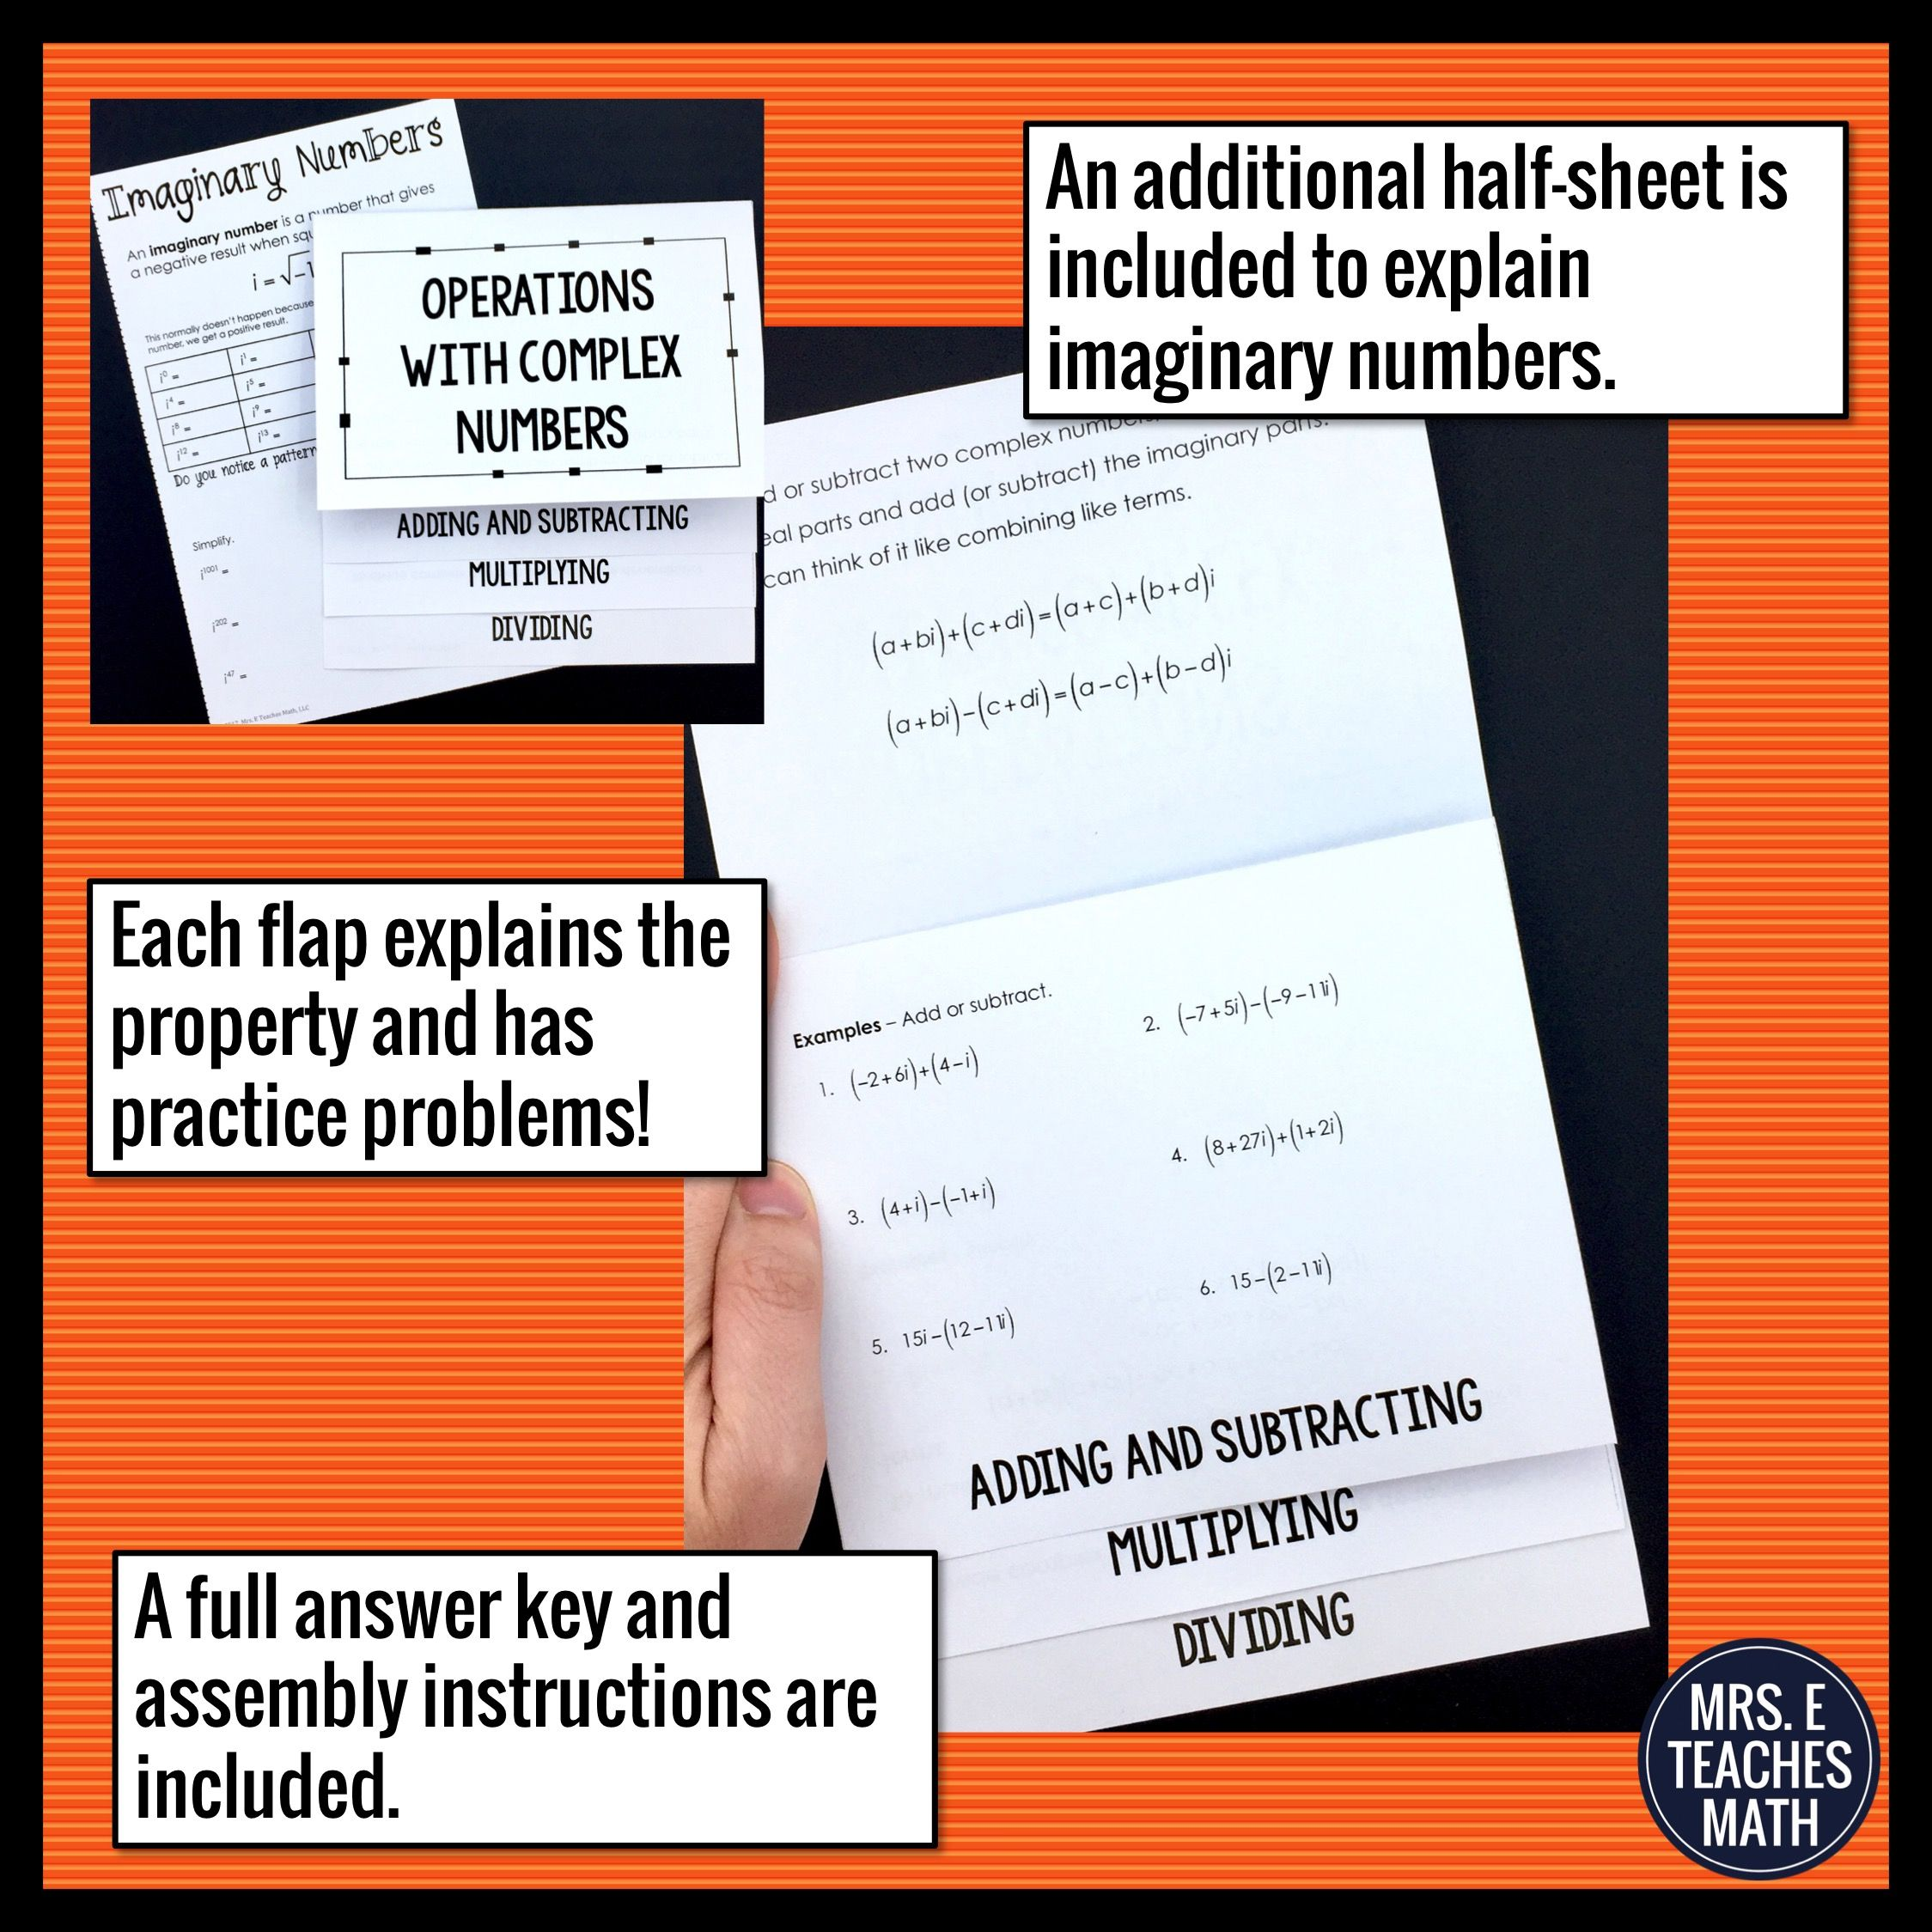 Operations With Complex Numbers Flipbook And Imaginary Numbers Complex Numbers Algebraic Thinking Adding And Subtracting Adding subtracting multiplying complex